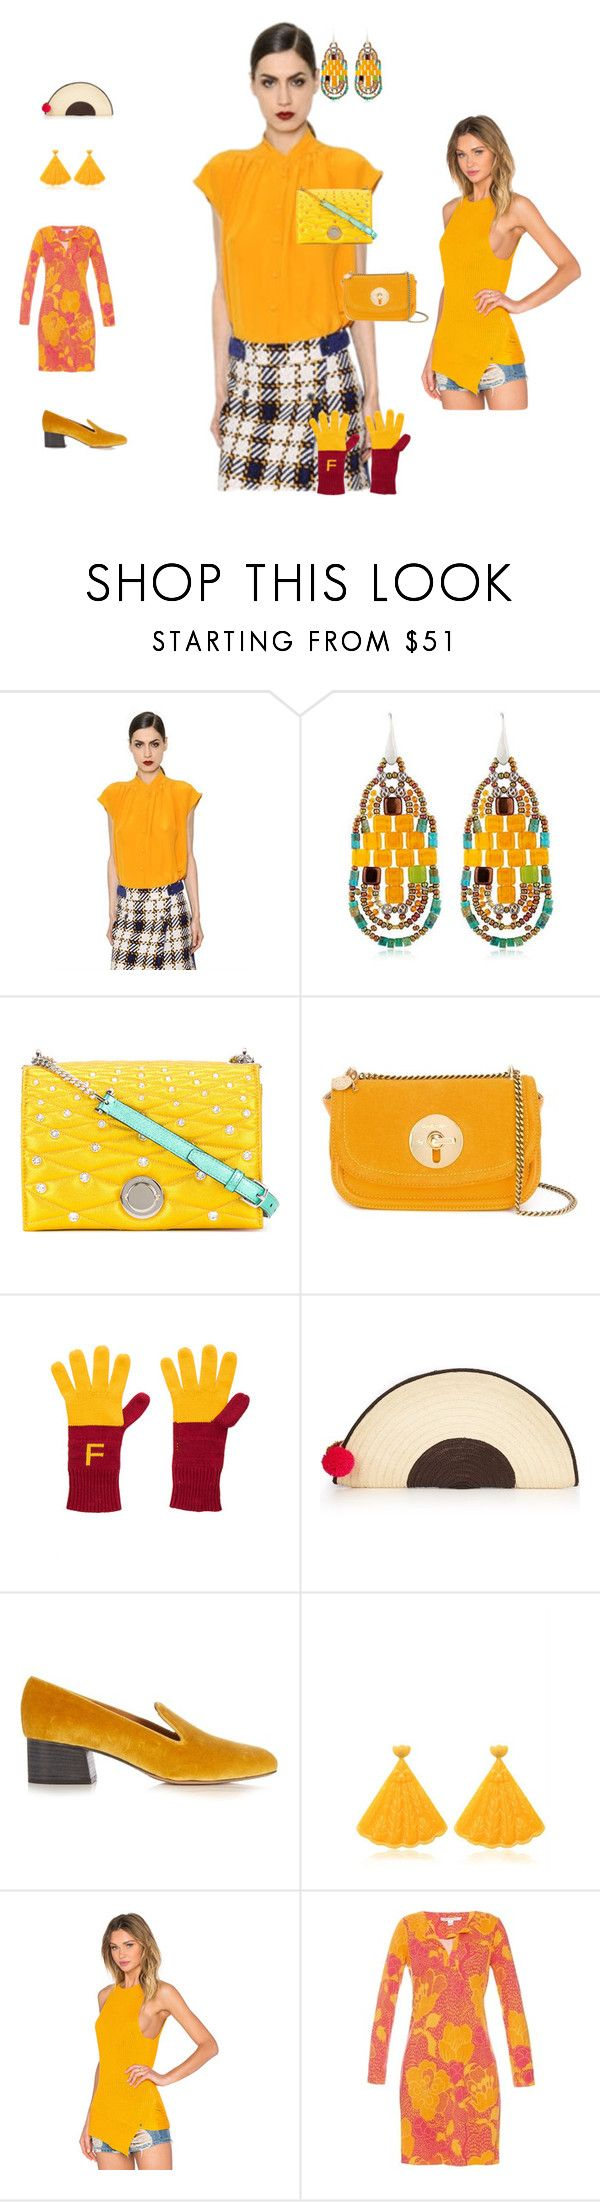 """""""Fashion dream"""" by emmamegan-5678 ❤ liked on Polyvore featuring Trussardi, Ziio, Bally, See by Chloé, Wildfox, Sophie Anderson, Chloé, Mariah Rovery, One Grey Day and Diane Von Furstenberg"""